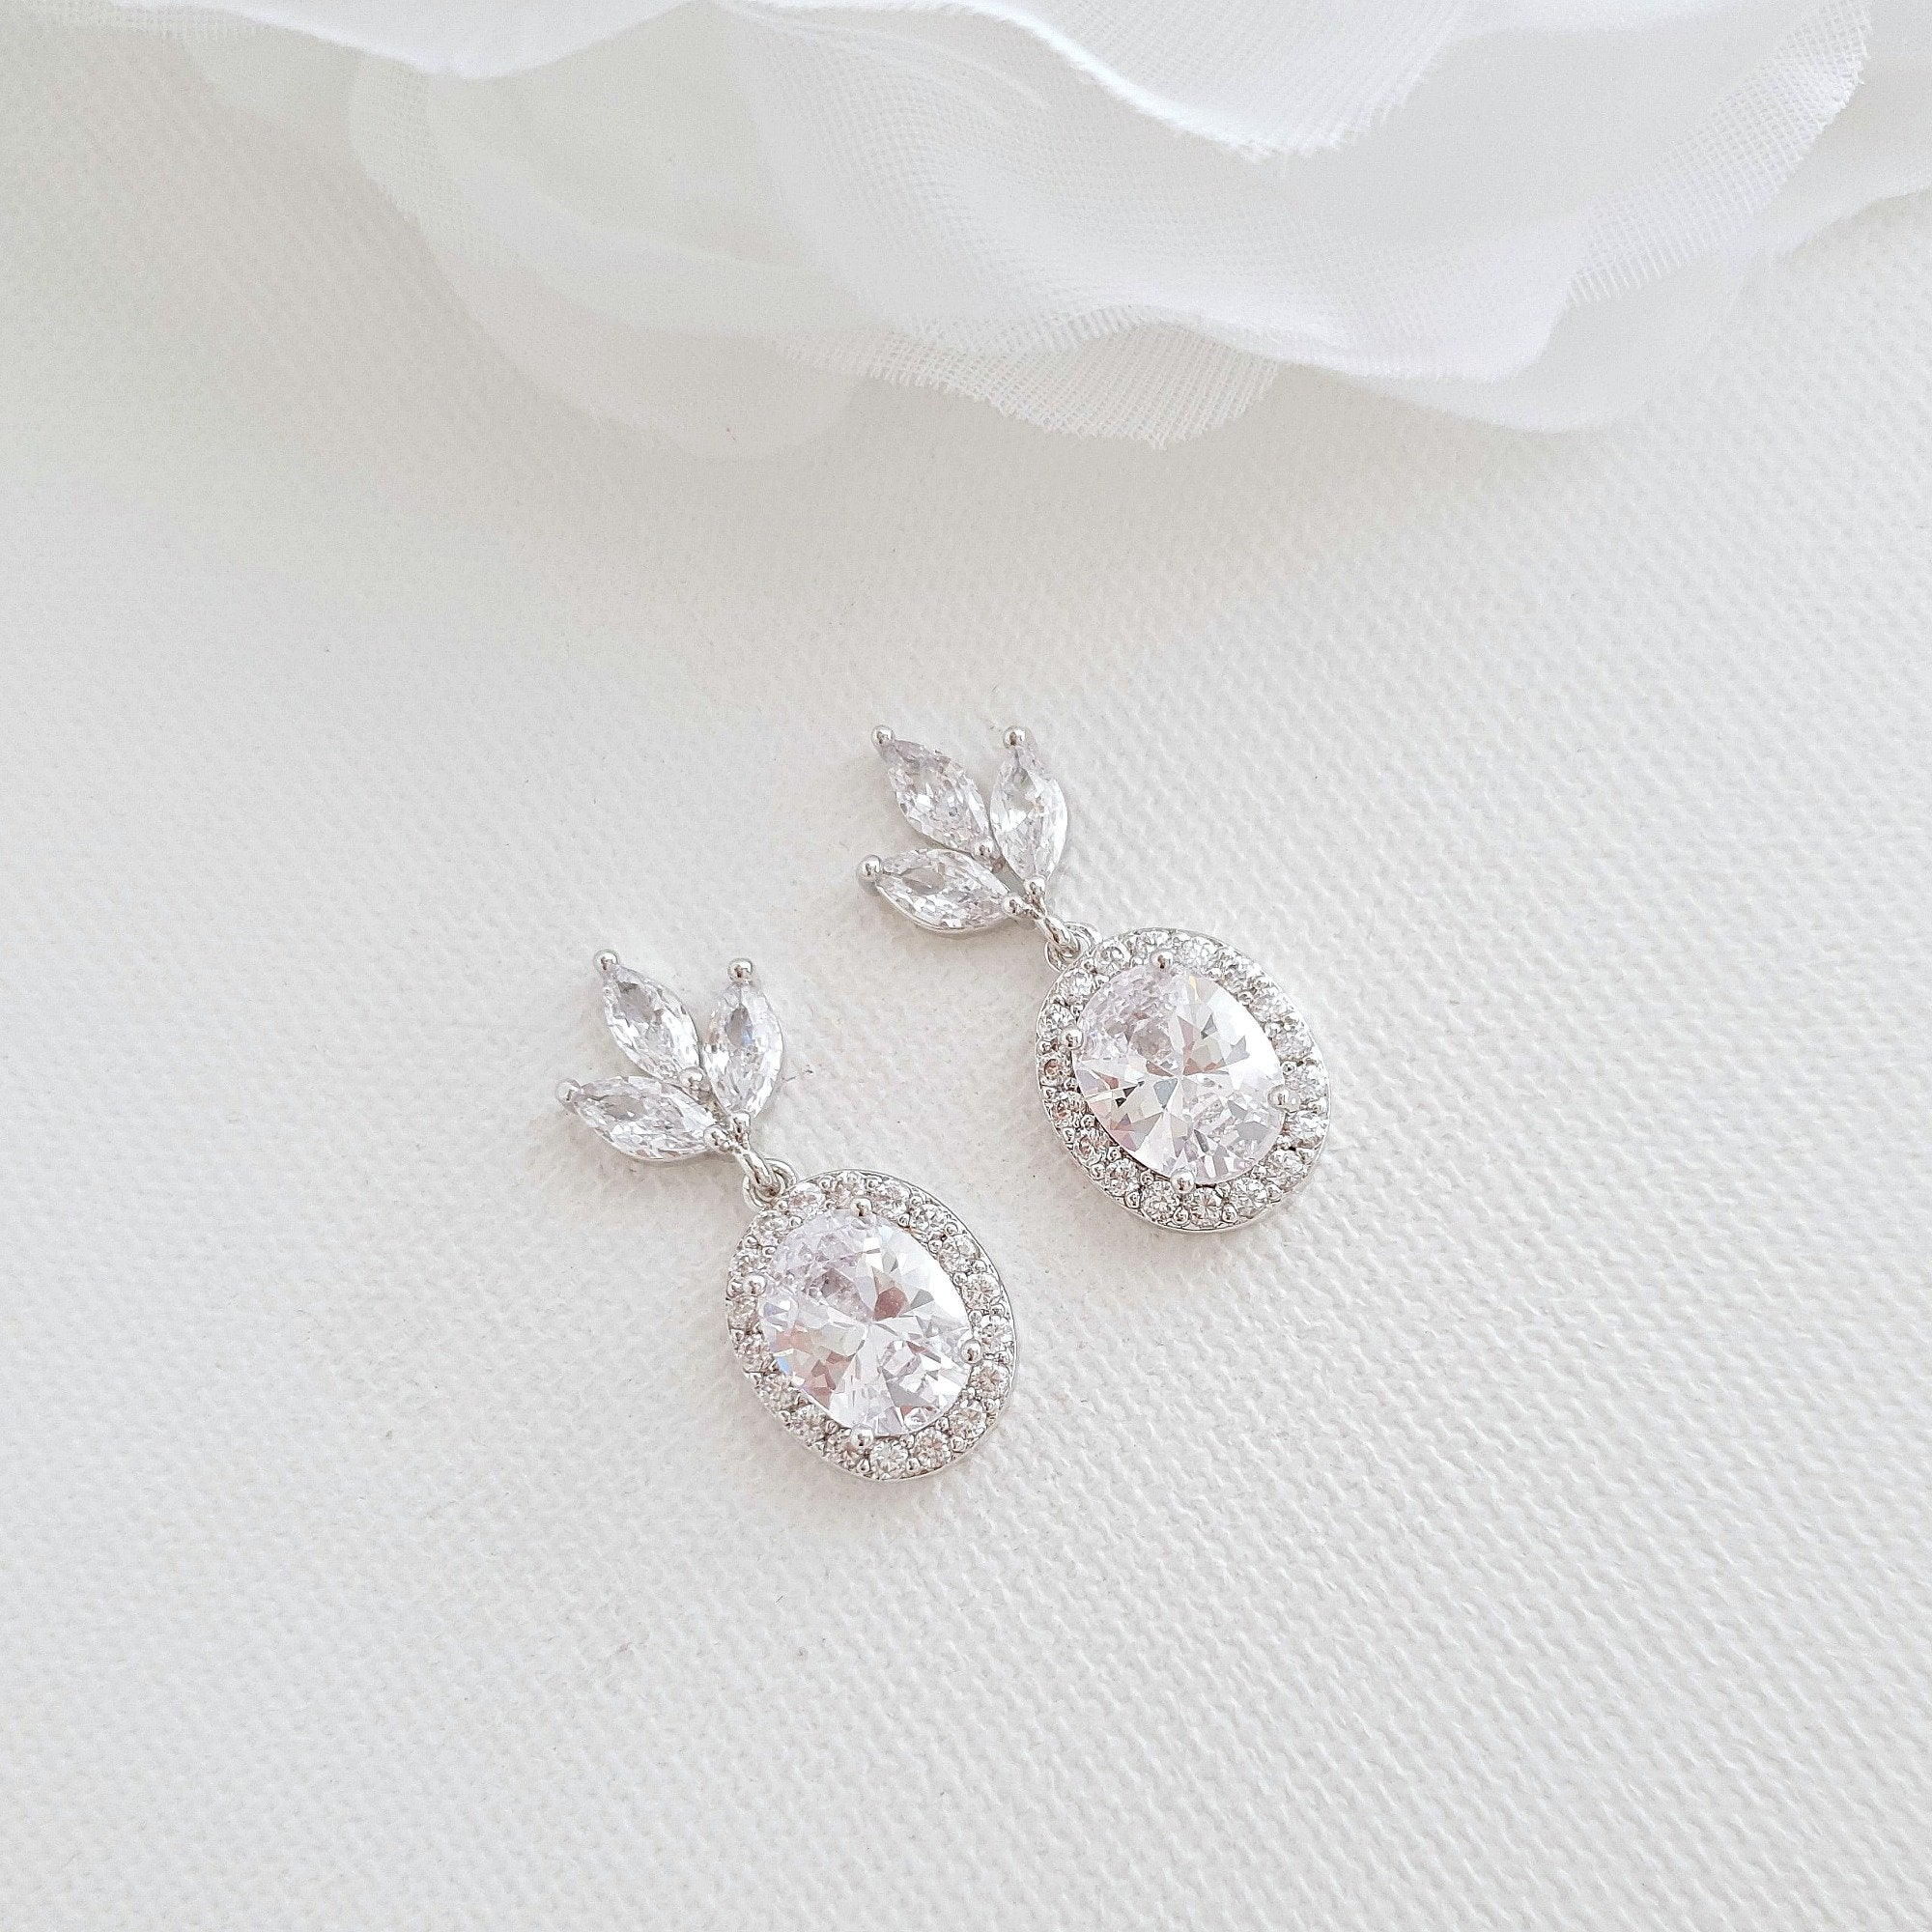 Small Bridesmaids Earrings in Silver- Emily - PoetryDesigns